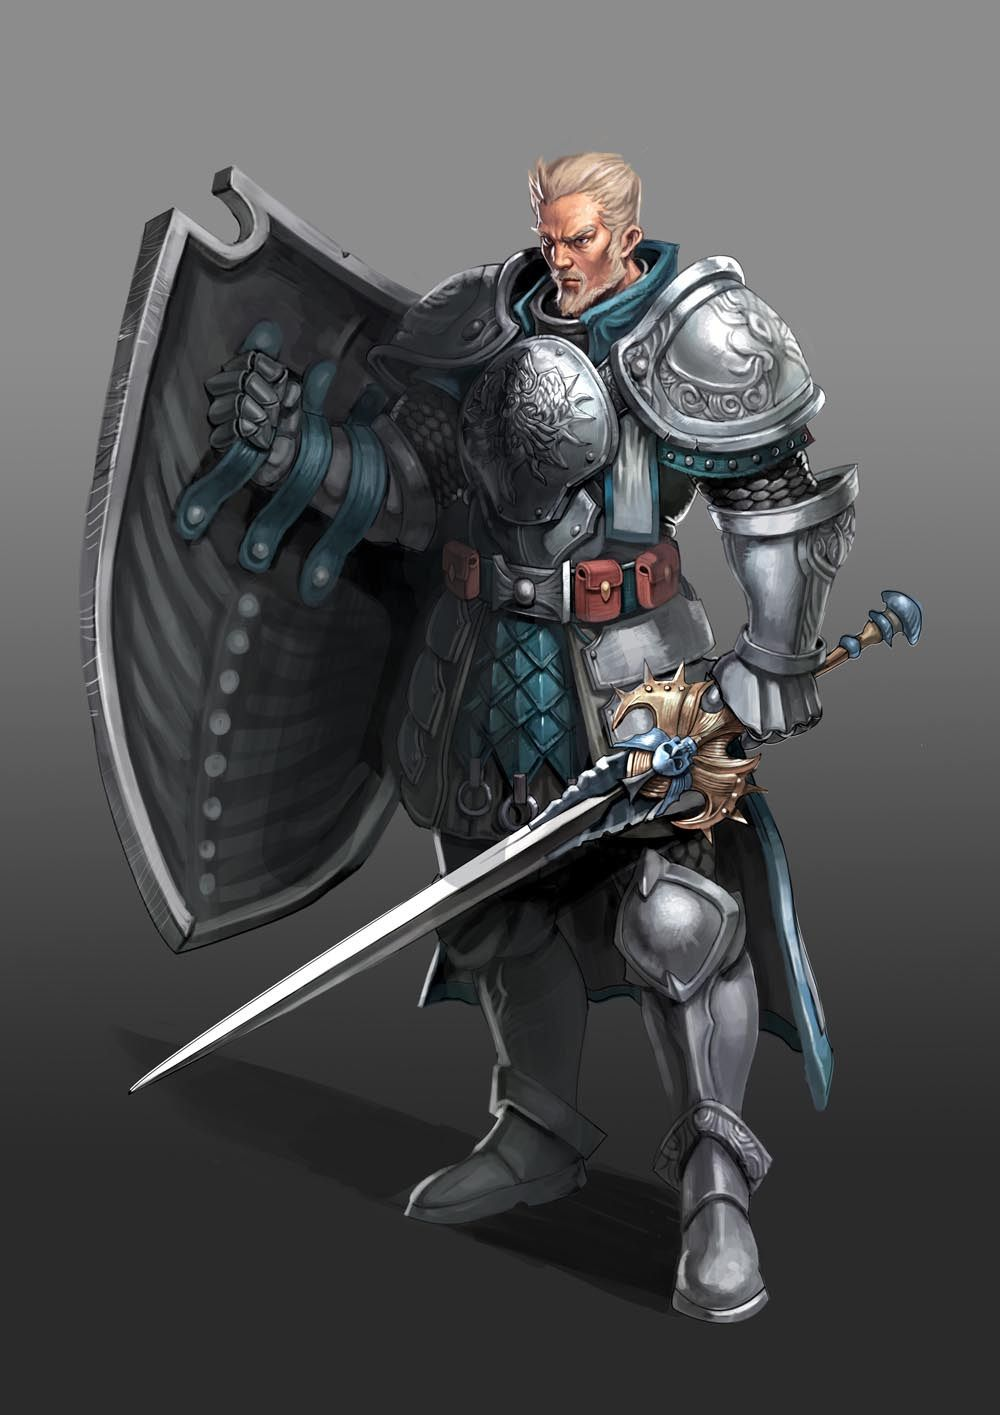 This knight would make the perfect bodyguard | Pathfinder character